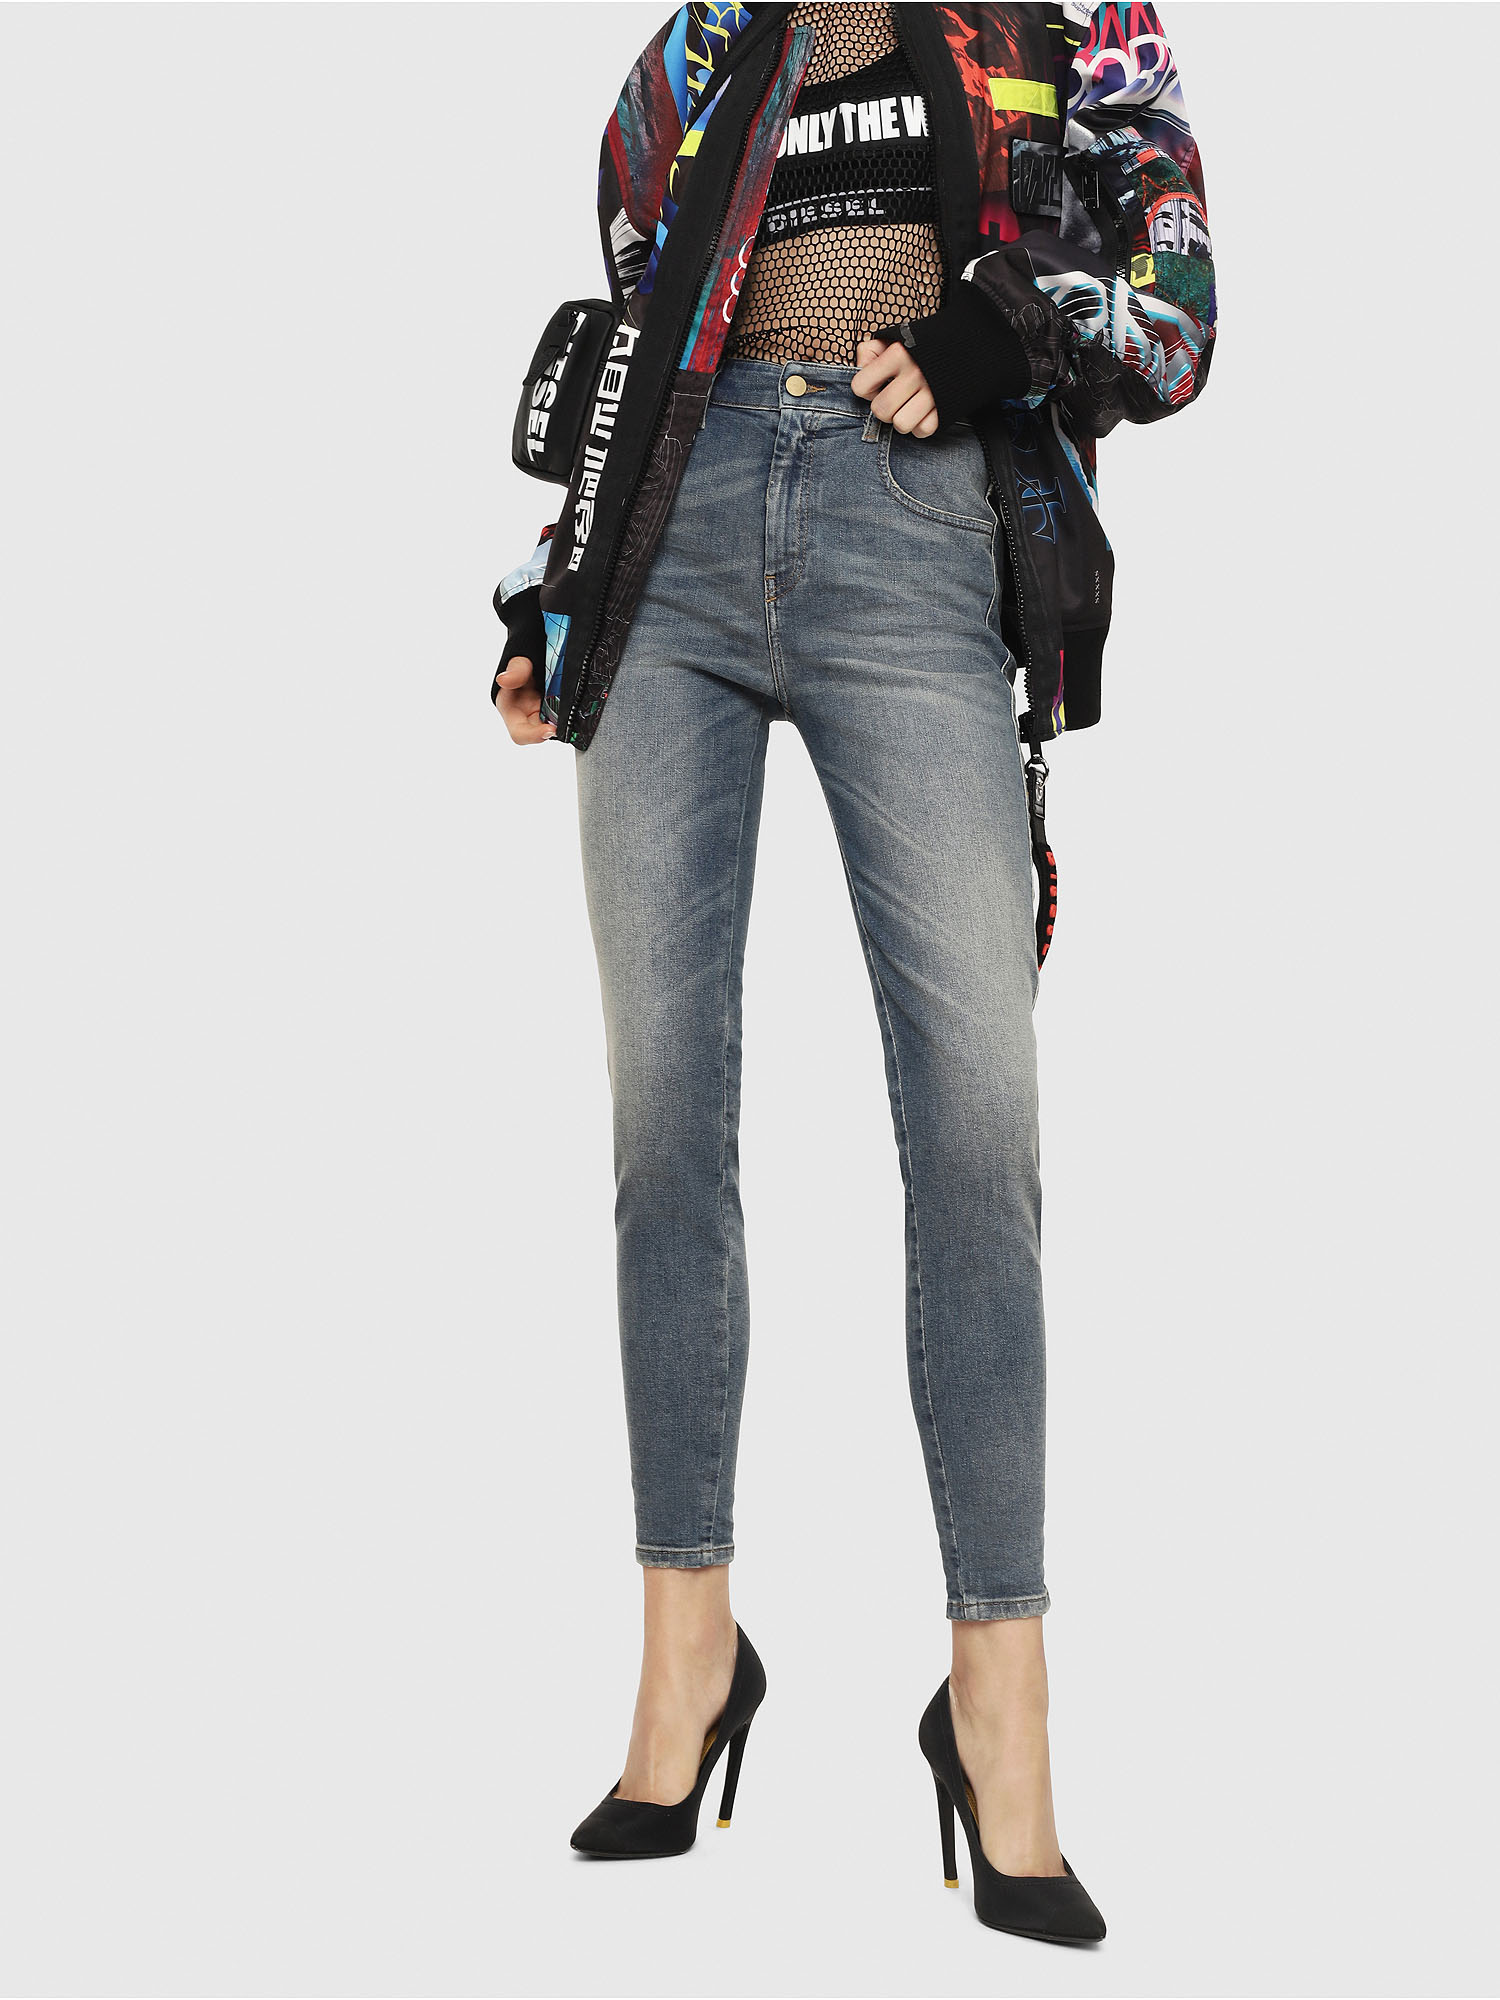 Diesel - Slandy High 085AZ,  - Jeans - Image 1